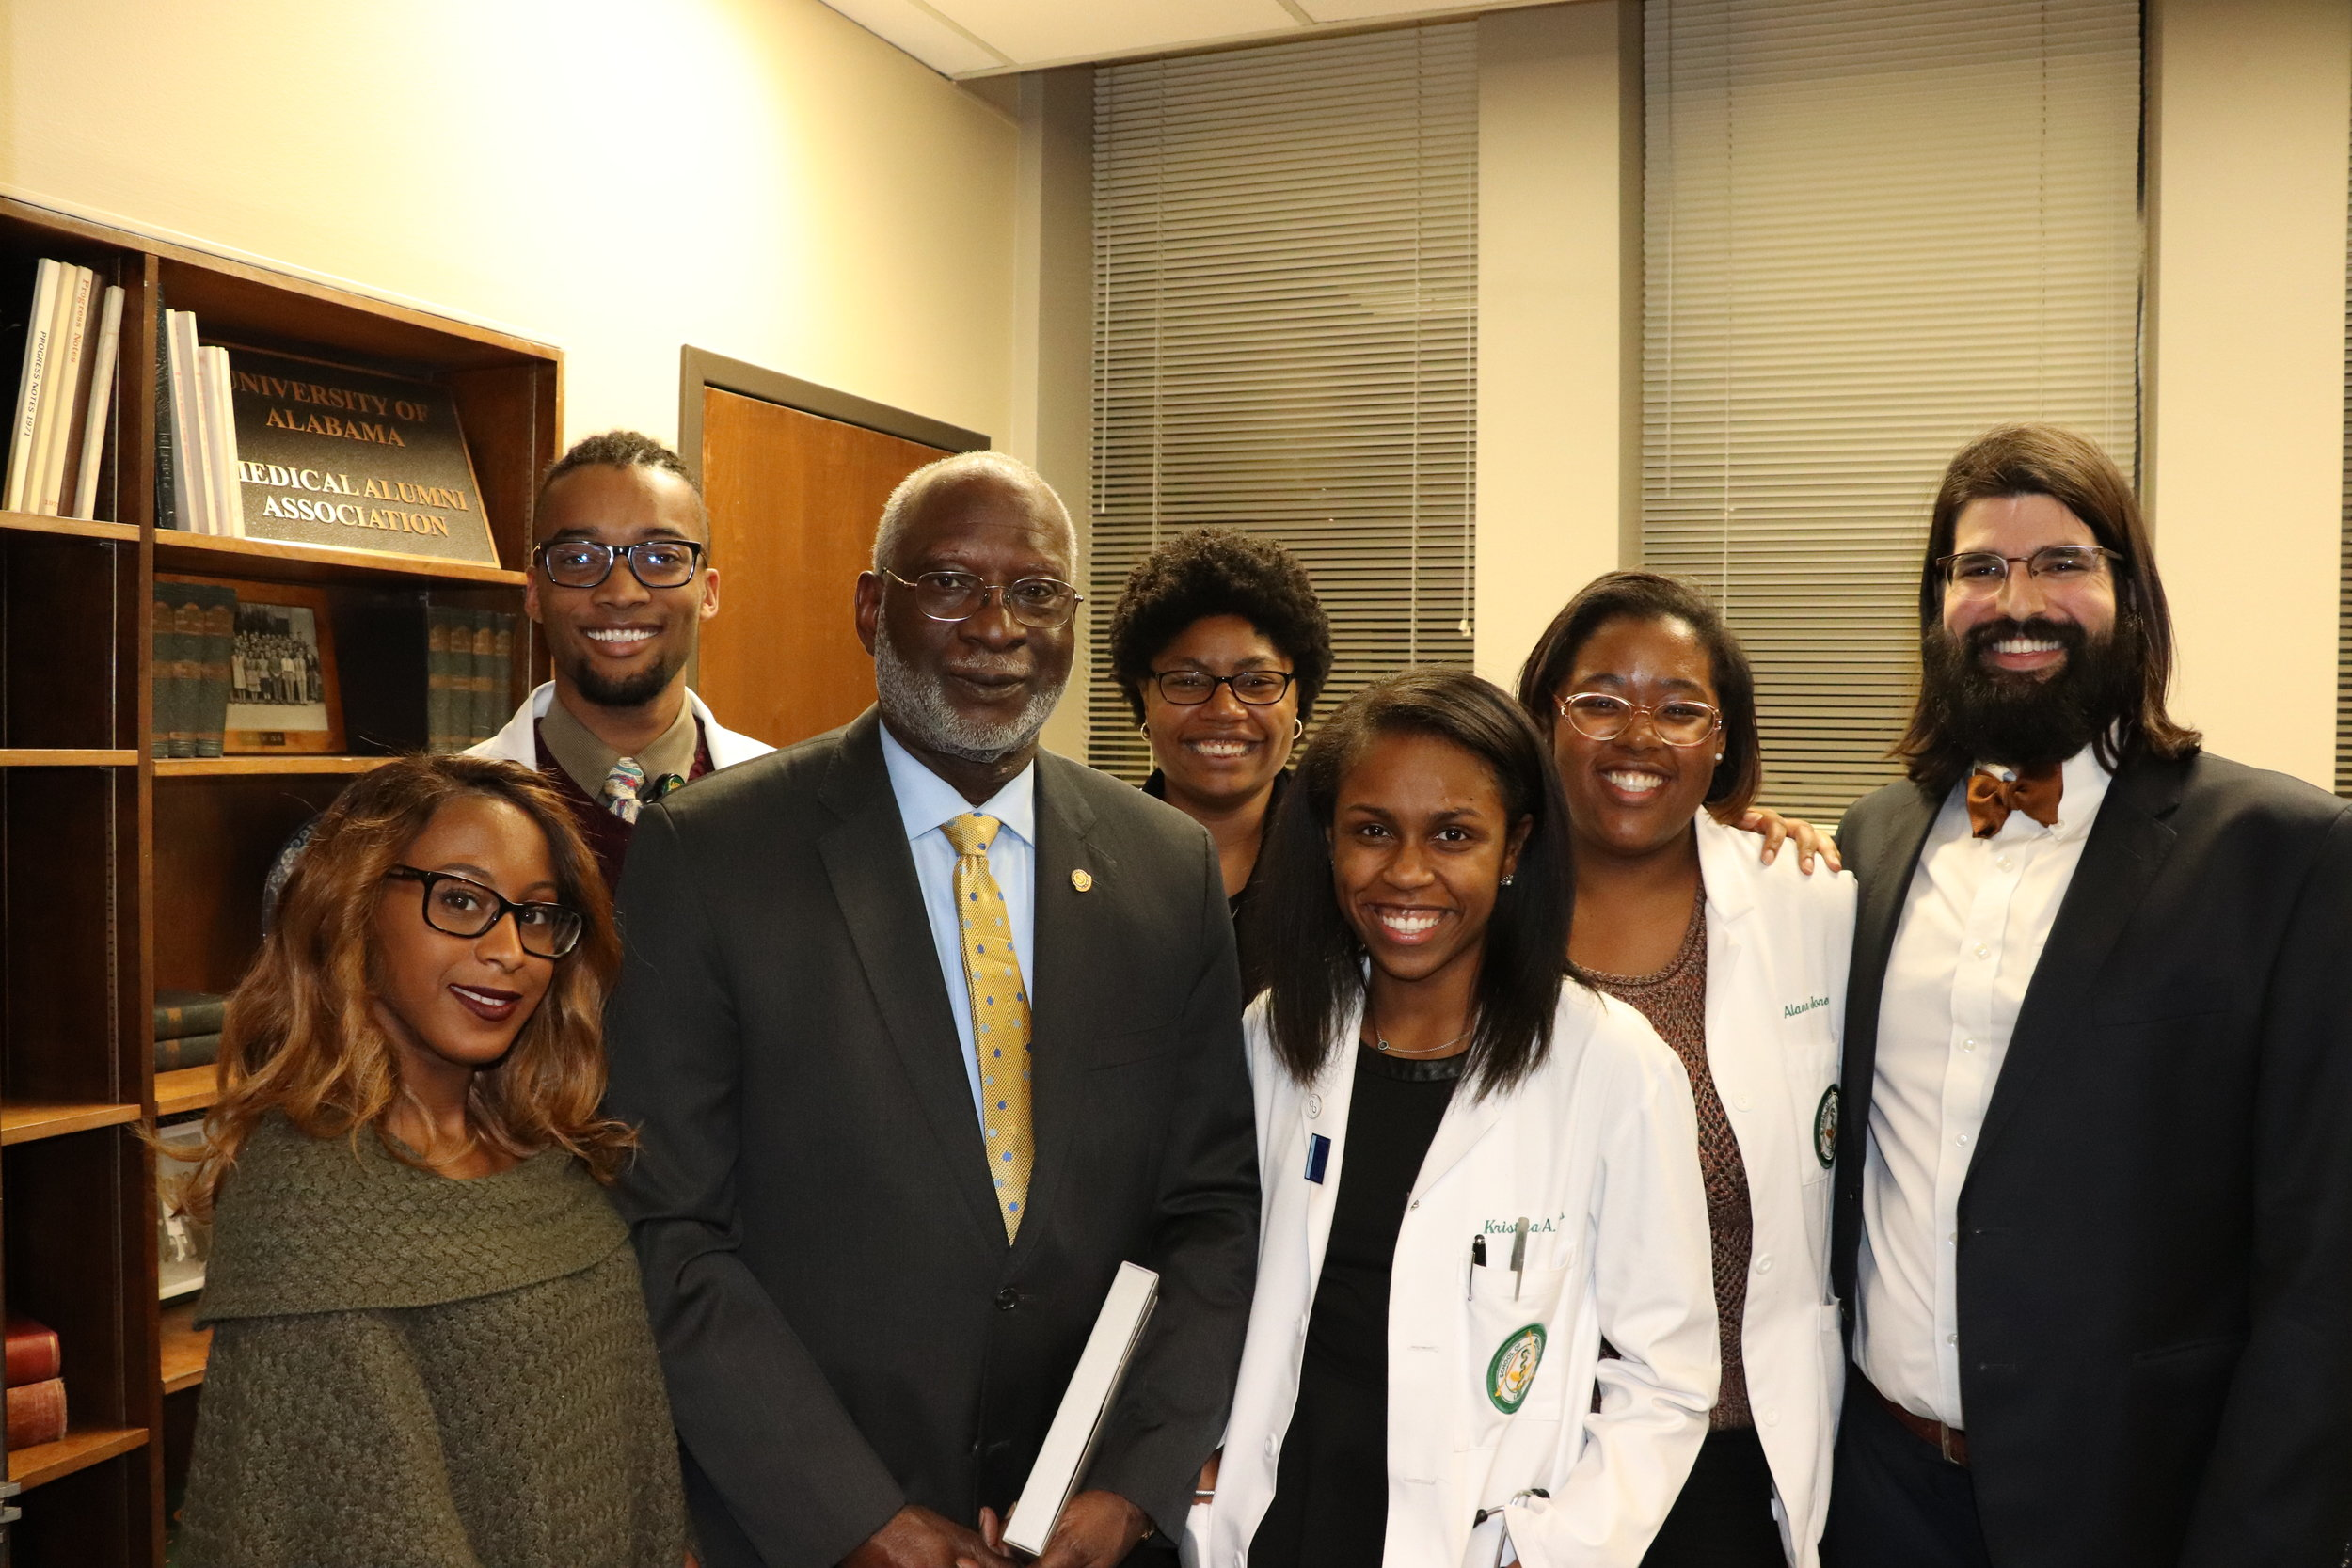 Future Researchers - ~30% of our membership consists of MD-PhD students who matriculated into the highly competitive Medical Scientist Training Program. Pictured: MSTP members with Dr. David Satcher, Former U.S. Surgeon General and first African American MD-PhD graduate from Case Western Reserve University